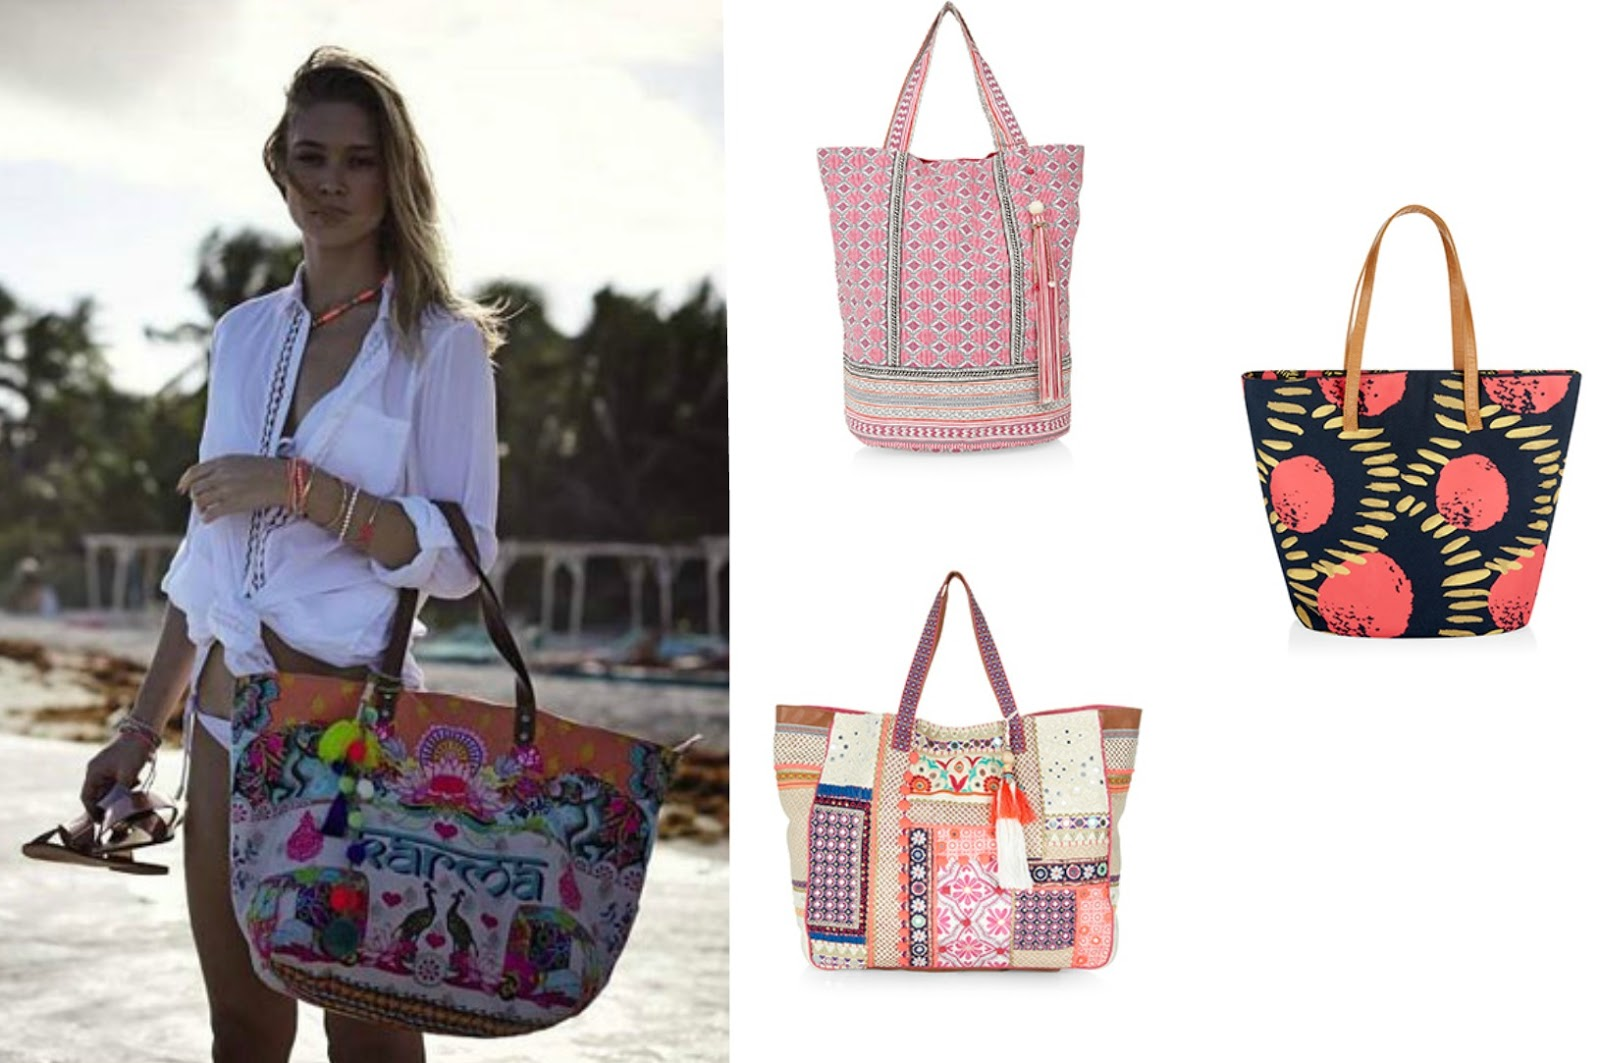 Bags For Beach, All at The Sea in Style! | Abc Women's Lifestyle